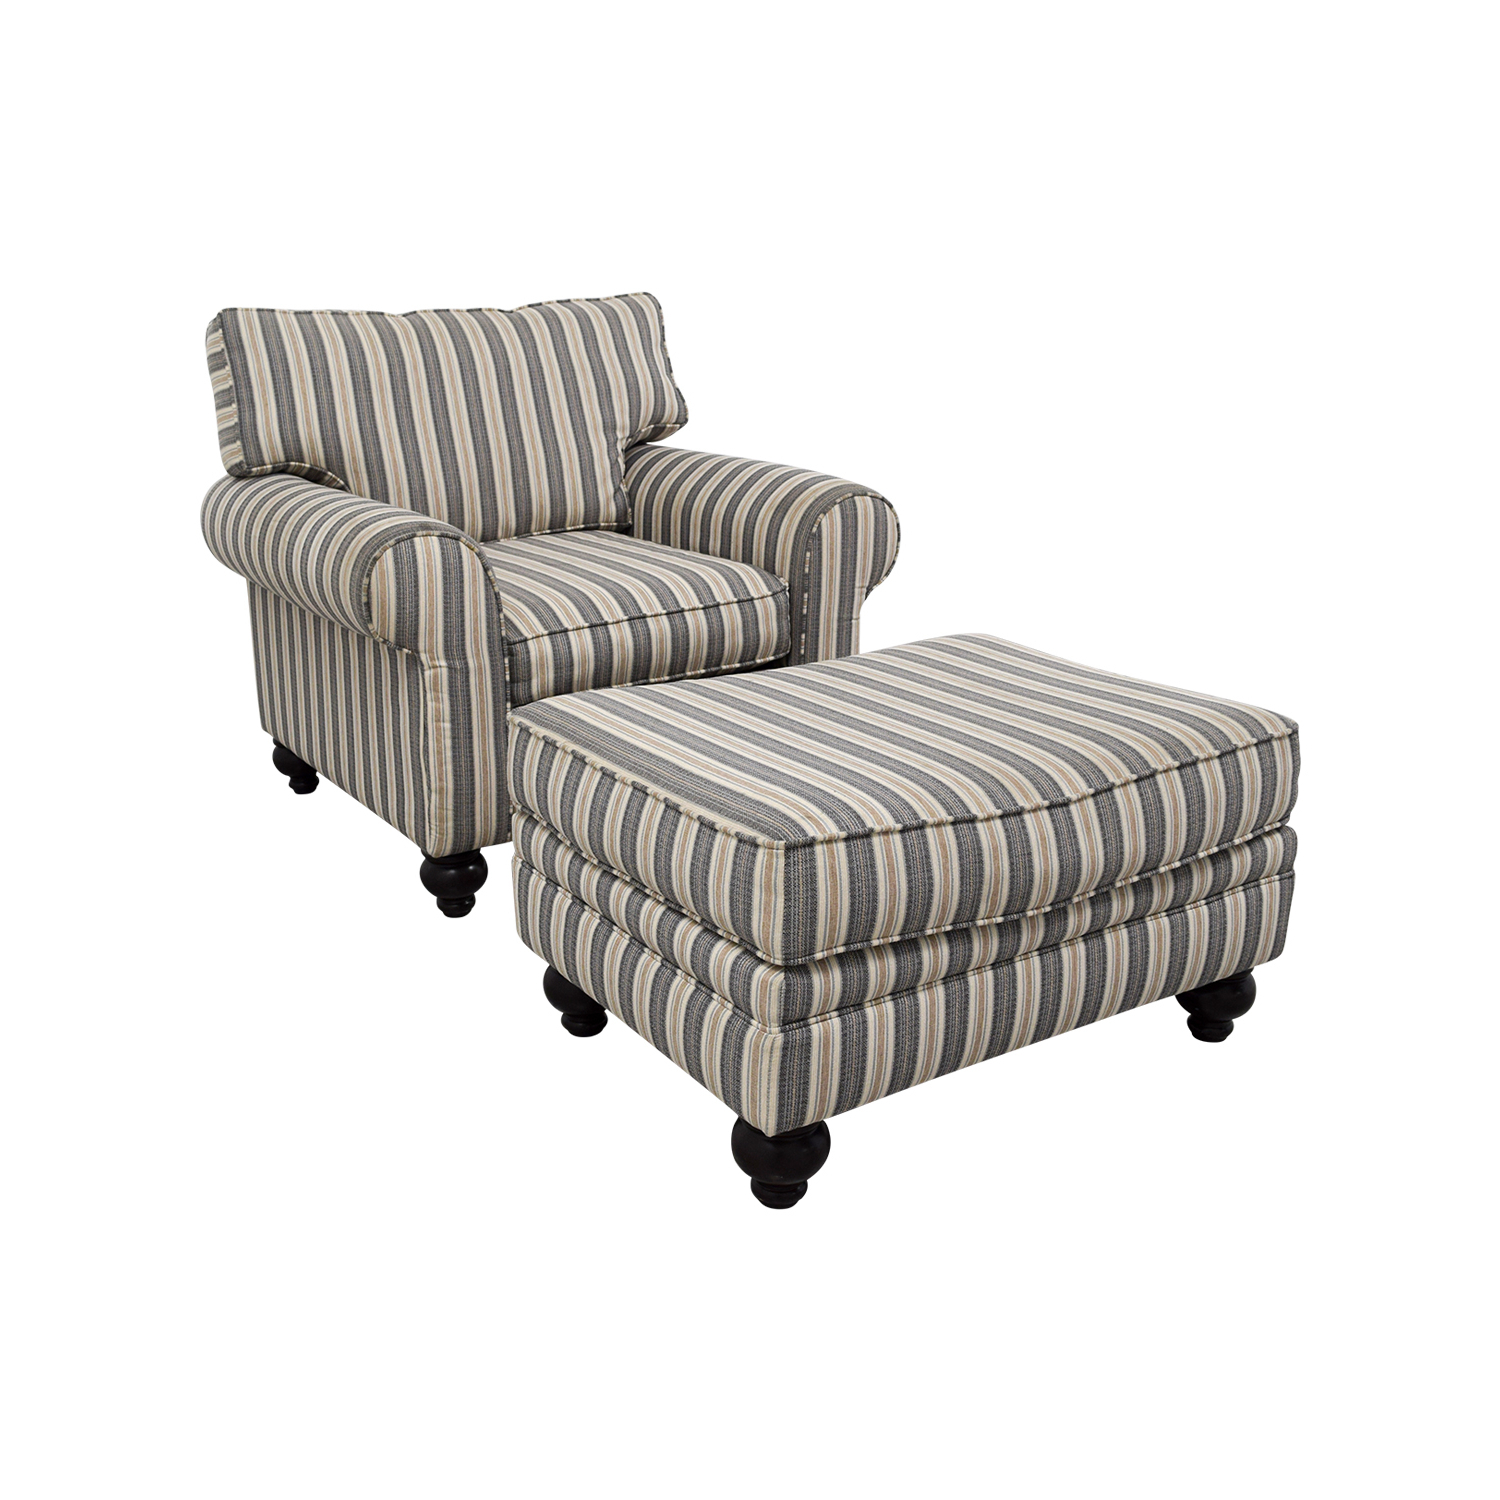 [%90% Off – Bob's Furniture Bob's Furniture Sofa Chair With Ottoman With Regard To Most Up To Date Sofa Chair And Ottoman|Sofa Chair And Ottoman Regarding 2019 90% Off – Bob's Furniture Bob's Furniture Sofa Chair With Ottoman|Well Known Sofa Chair And Ottoman For 90% Off – Bob's Furniture Bob's Furniture Sofa Chair With Ottoman|Trendy 90% Off – Bob's Furniture Bob's Furniture Sofa Chair With Ottoman With Sofa Chair And Ottoman%] (View 2 of 20)